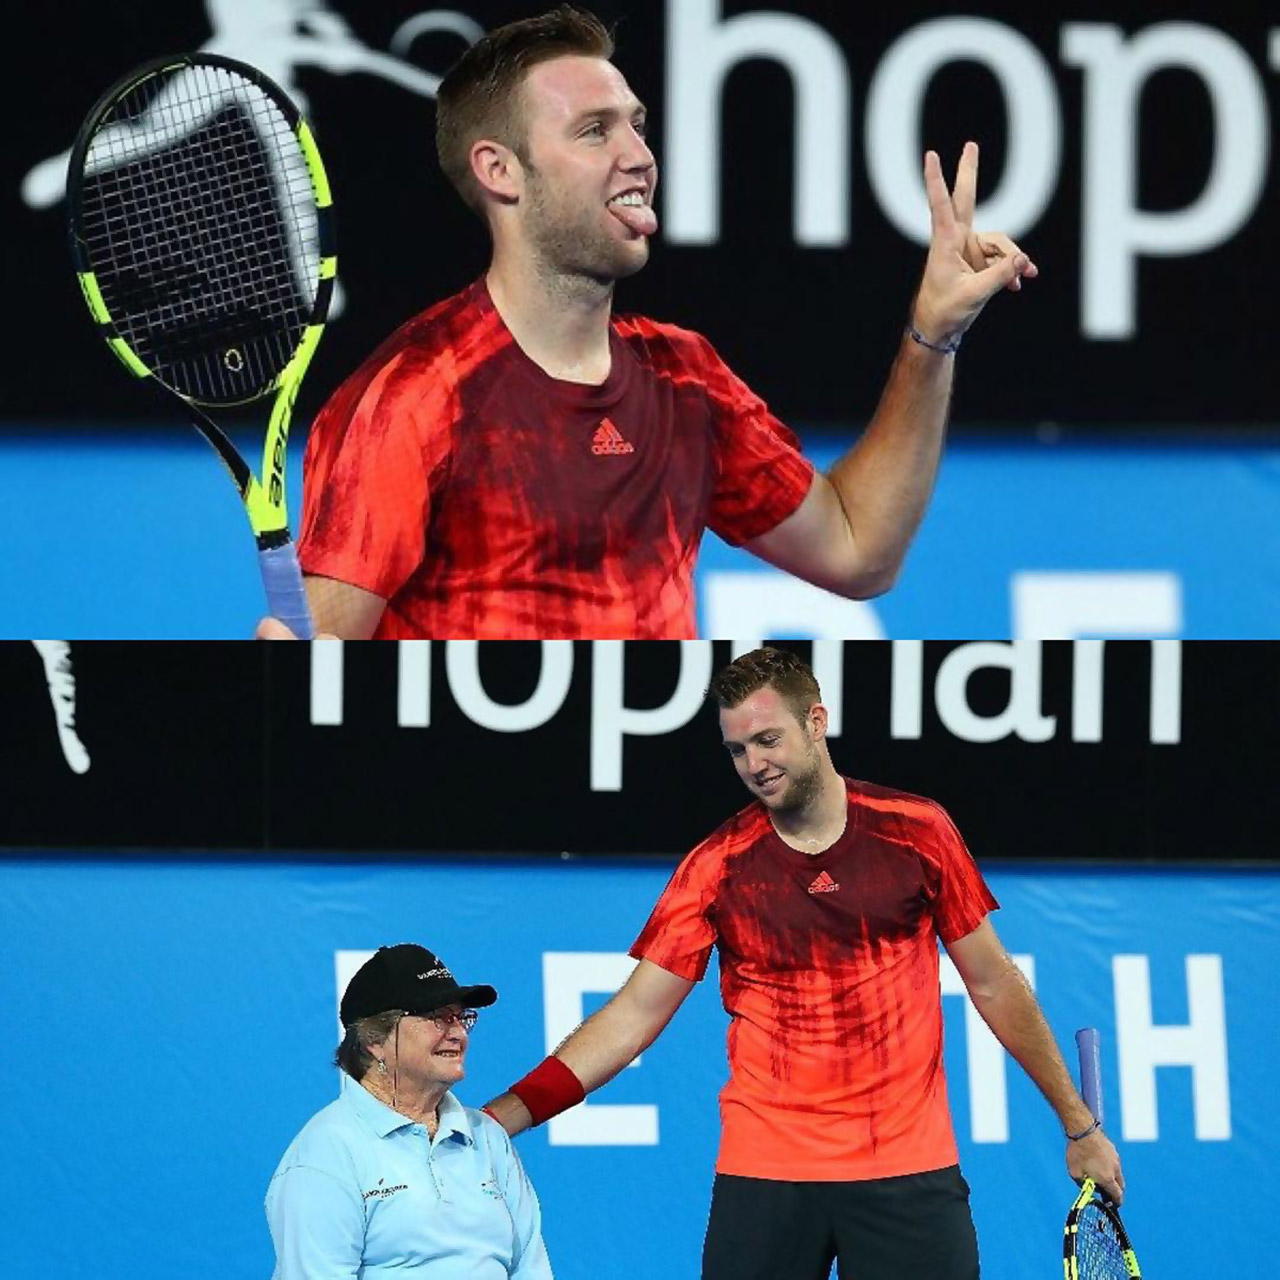 Jack Sock shows off his sportsmanship versus Lleyton Hewitt